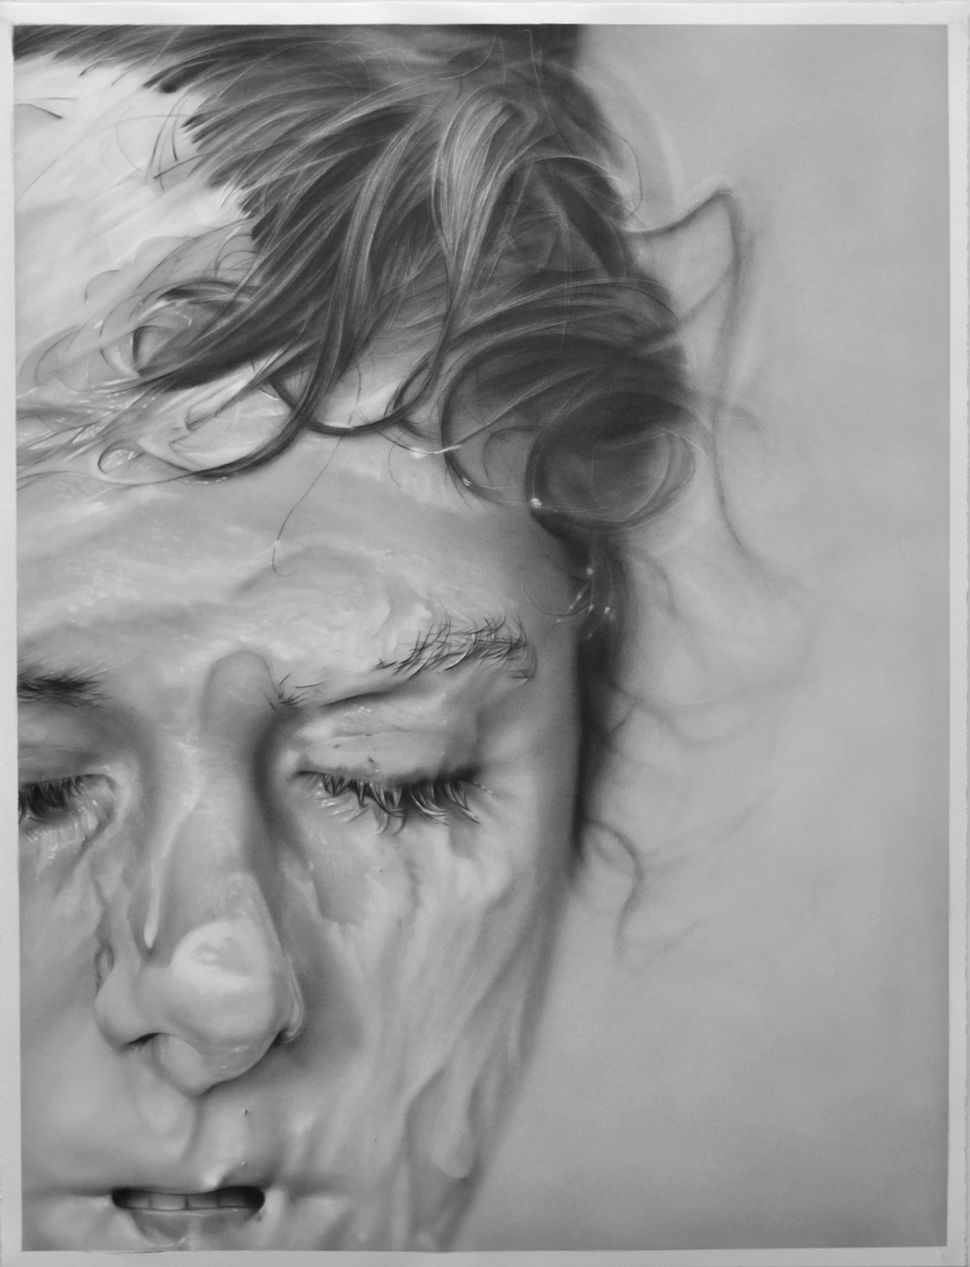 """Slathered"", 50"" x 38"", graphite on paper, 2012"